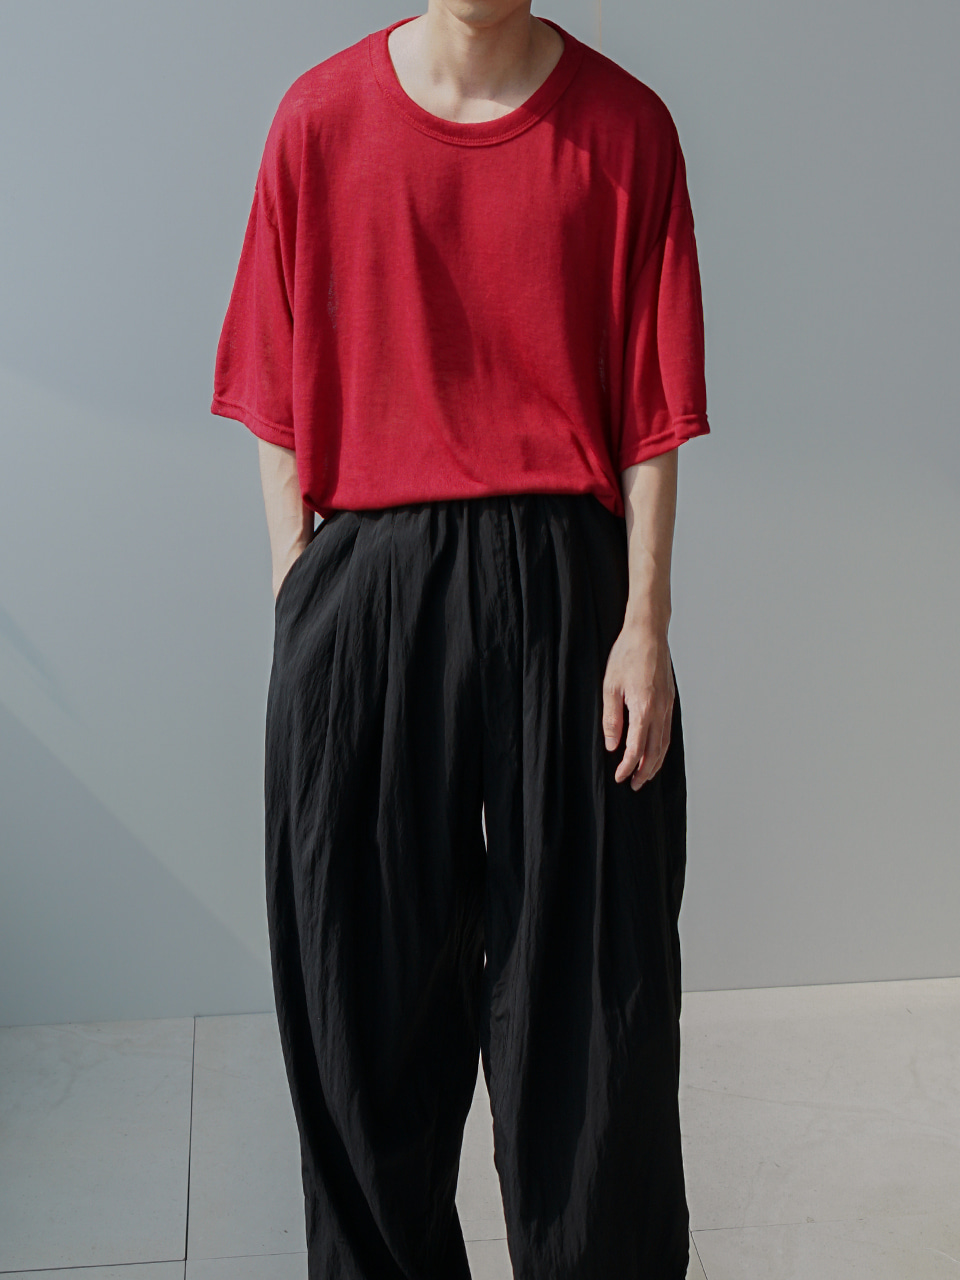 Parts Oversized Half Tee (4color)